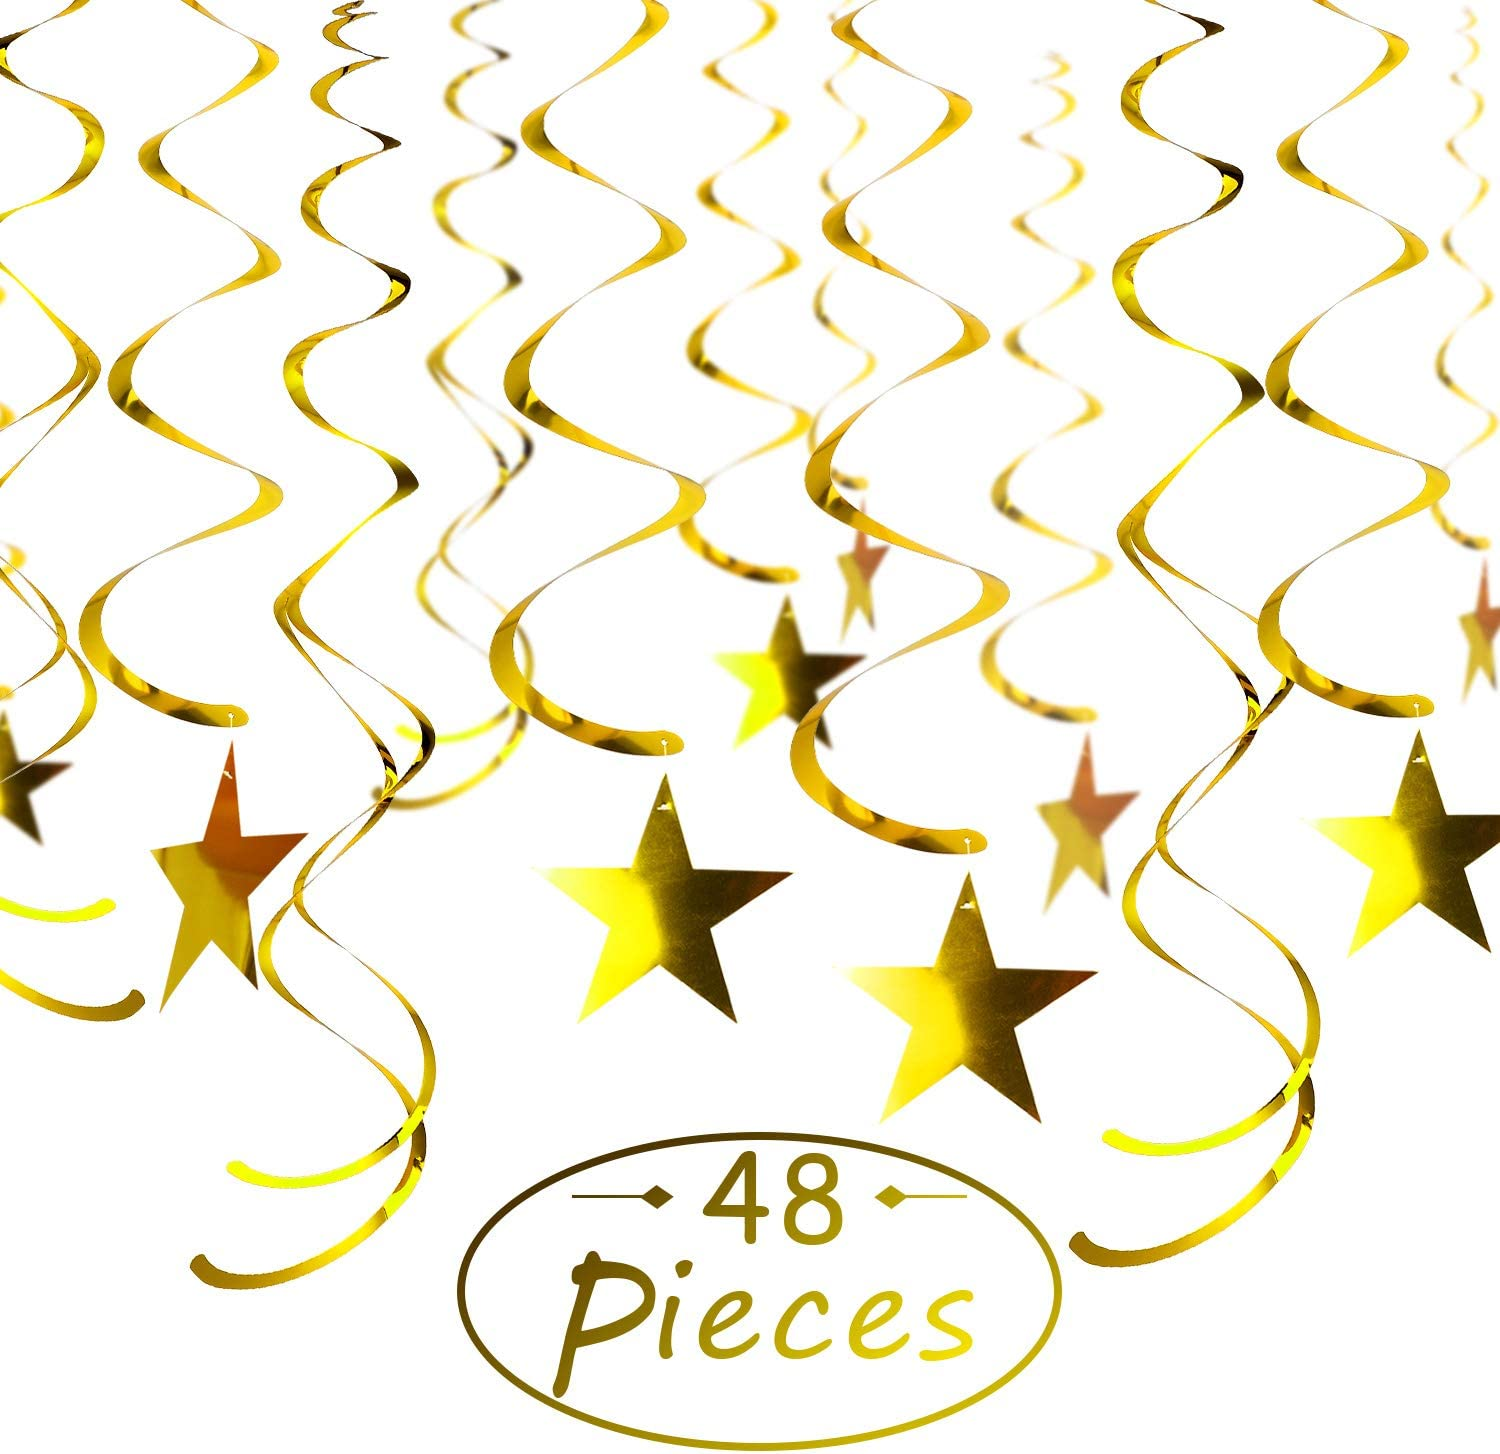 Boao 48 Pieces Gold Stars Swirls Hanging Shiny Twinkle Foil Swirl Decorations Hanging Swirl for Ceiling Whirls Wedding Birthday Party Christmas Halloween